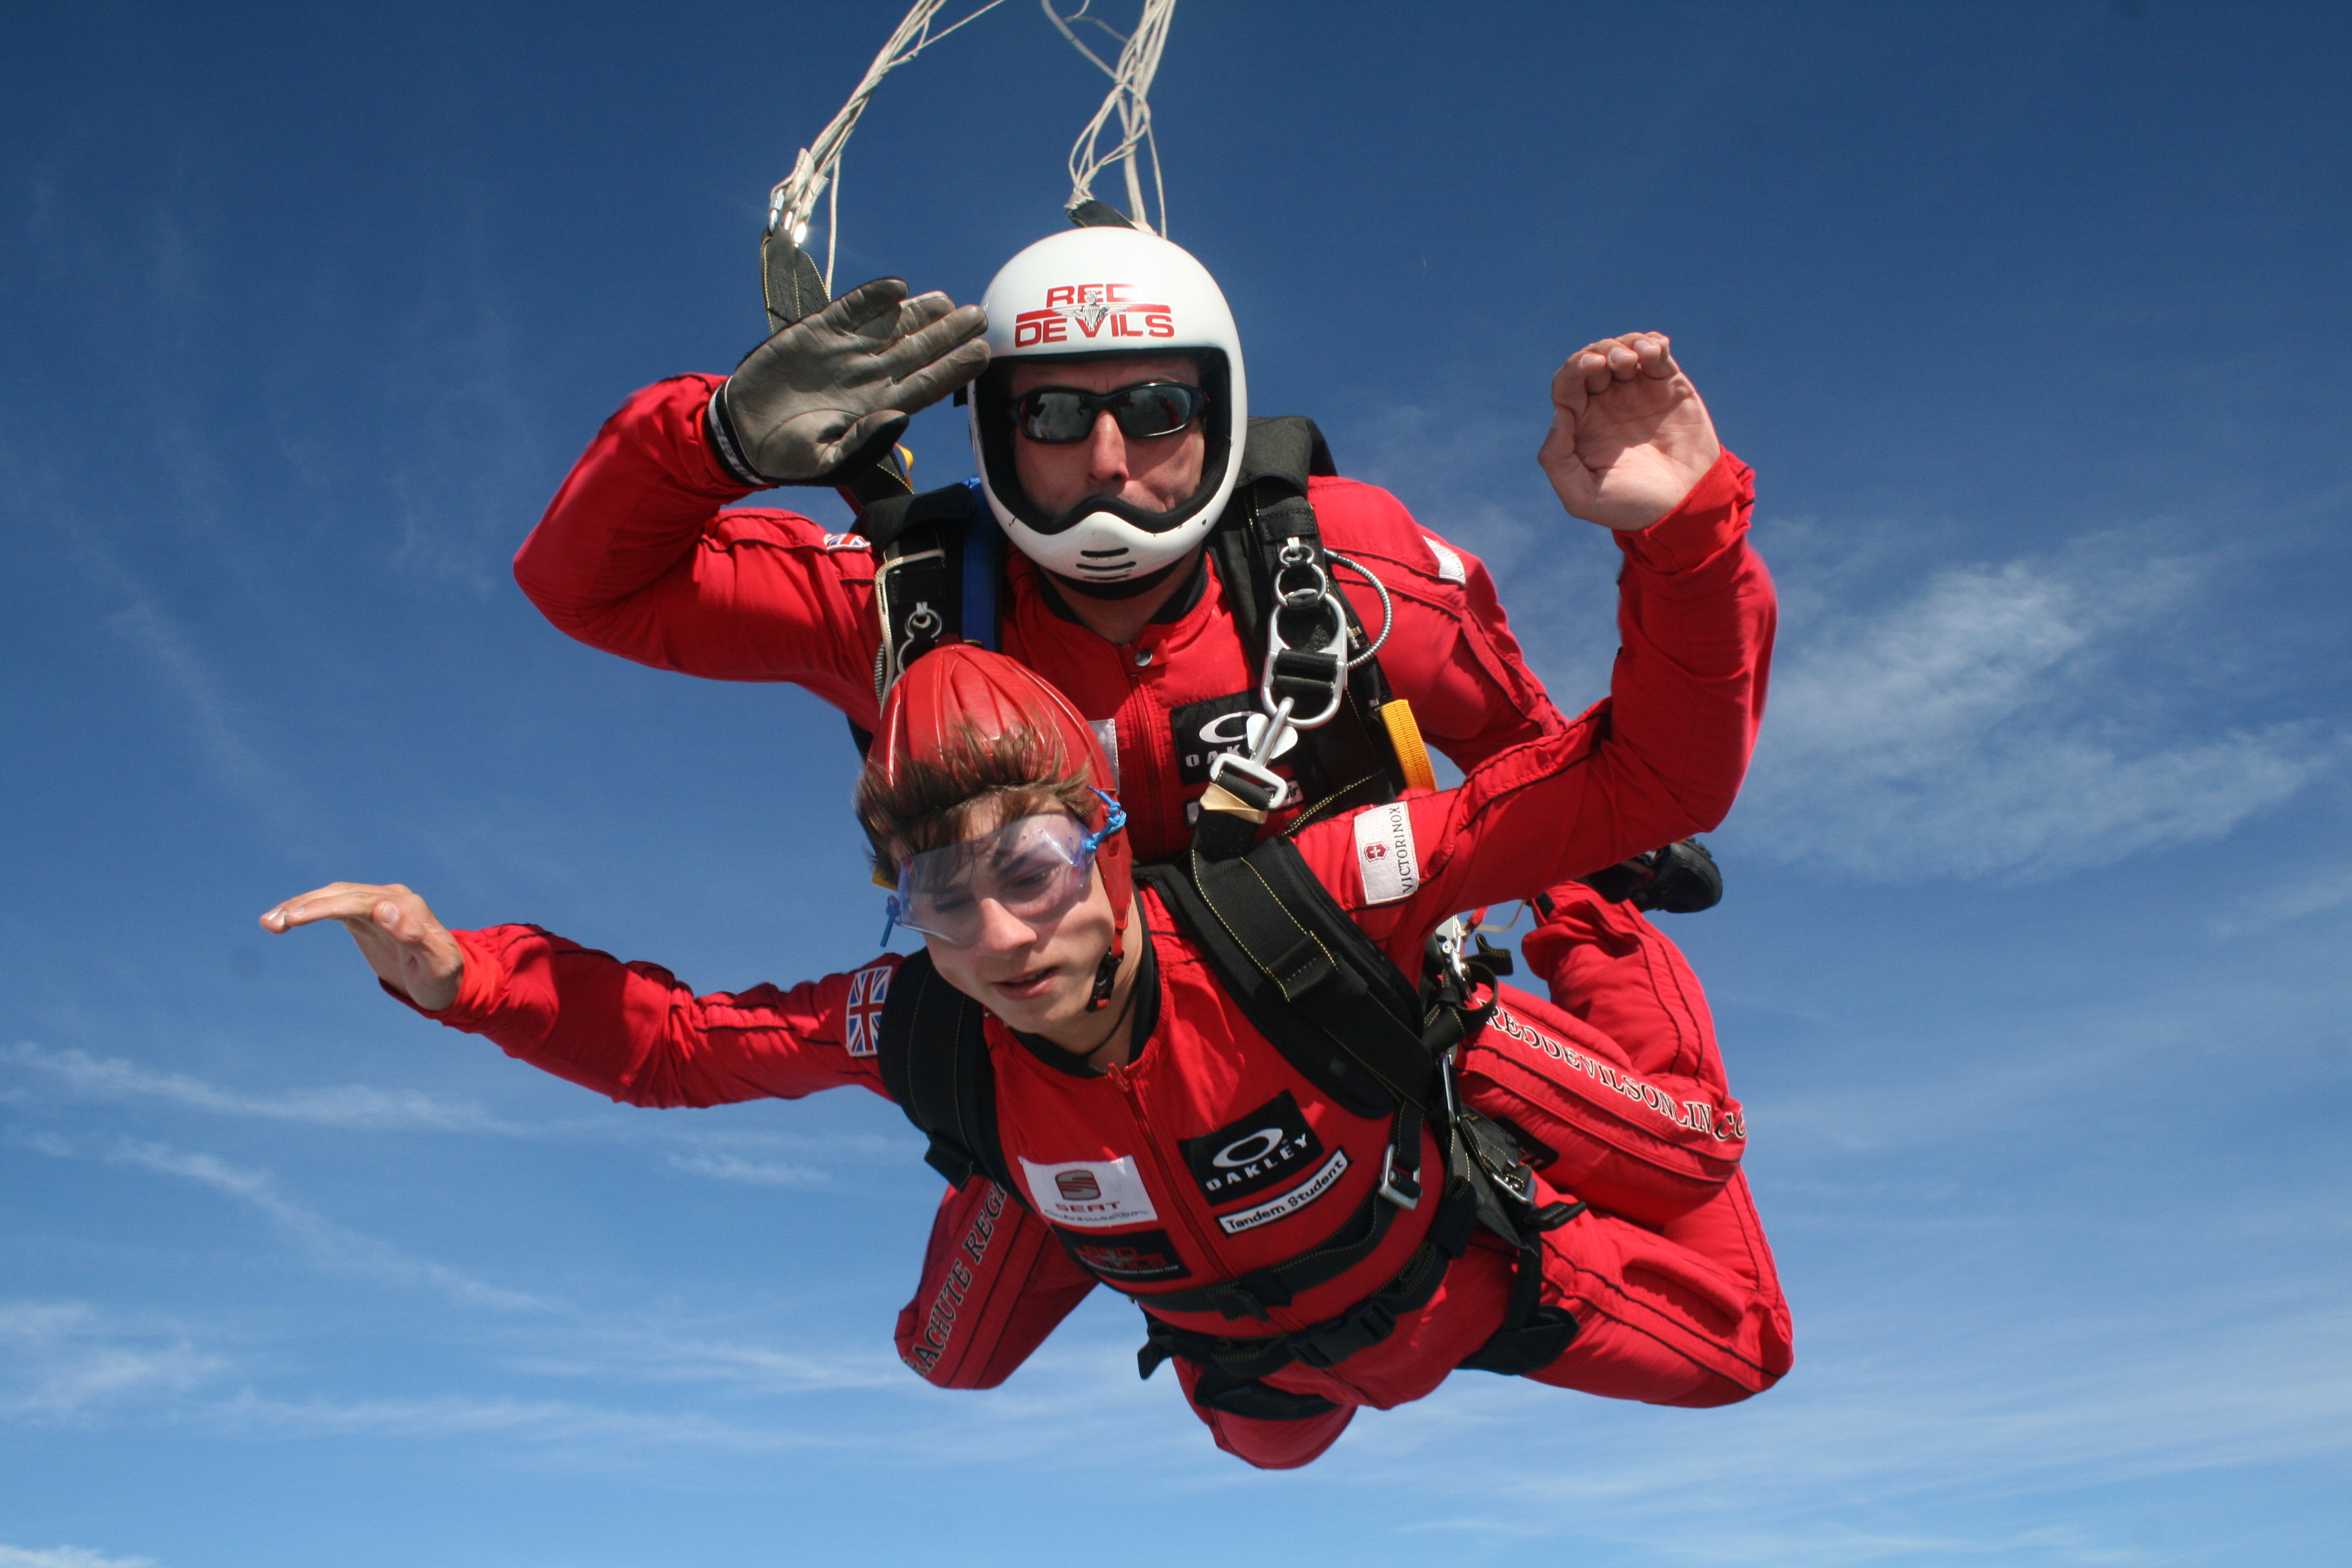 Red Devils Parachute Freefall Skydive for Two